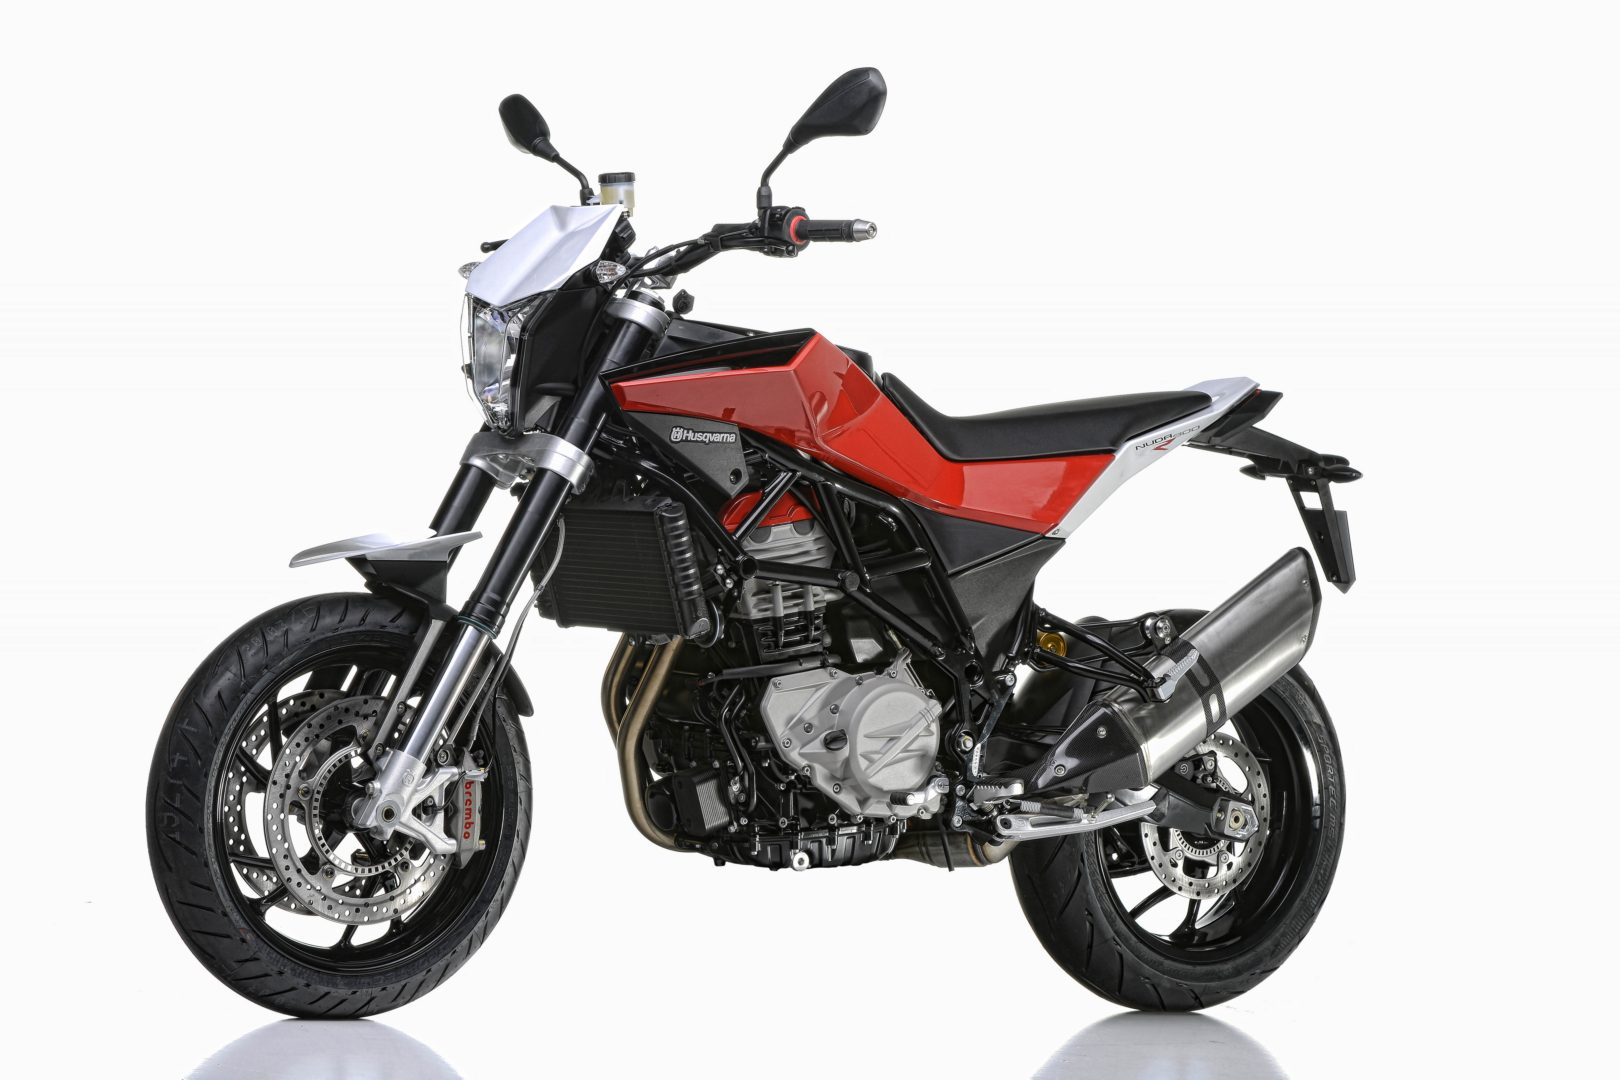 husqvarna nuda 900 abs 900 r abs europe and japan prices announced autoevolution. Black Bedroom Furniture Sets. Home Design Ideas